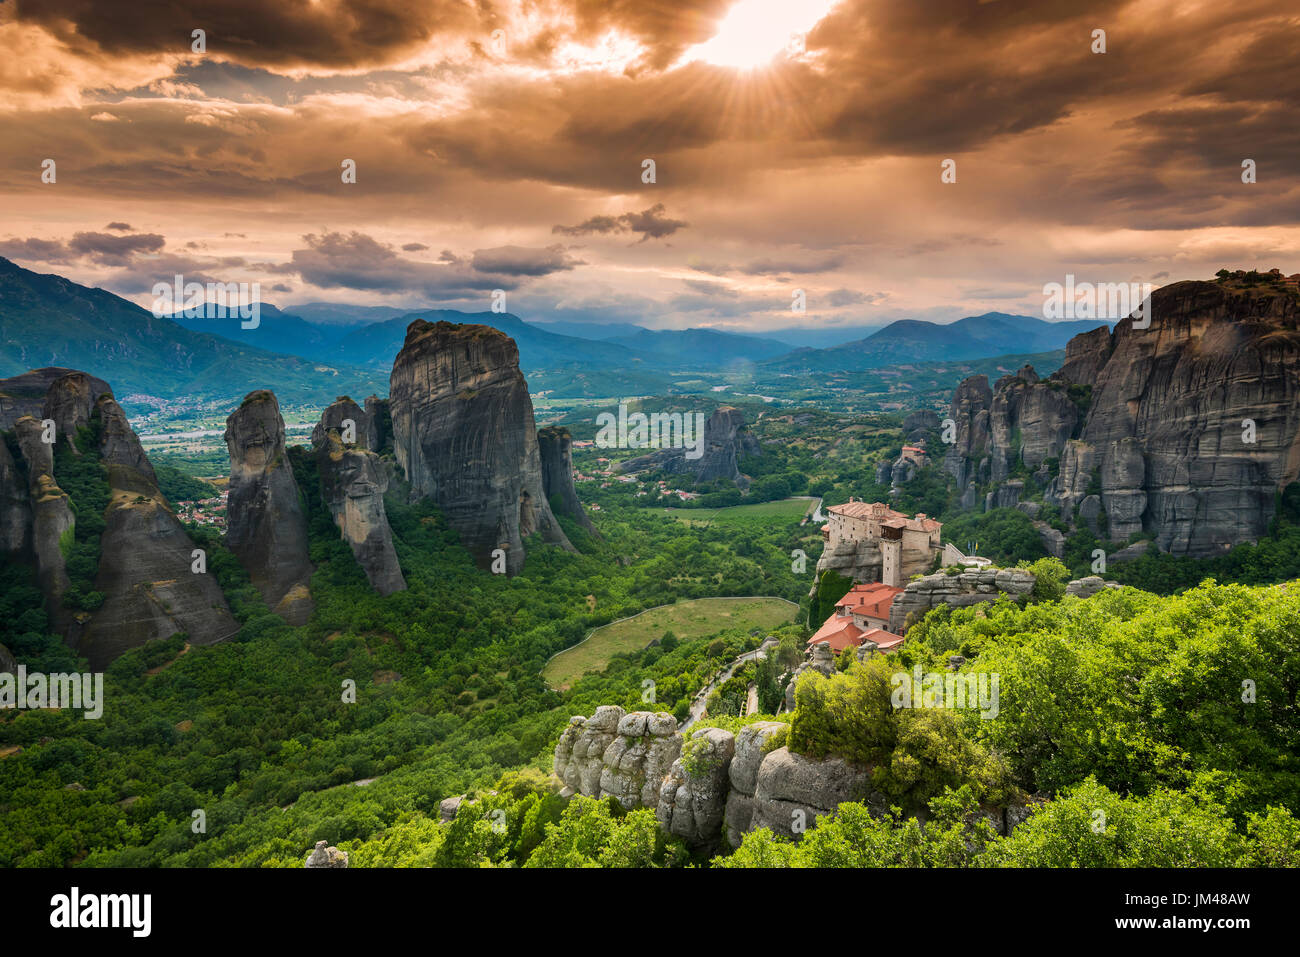 Sunset view over Monastery of Moni Agias Varvaras Roussanou and the spectacular massive rocky pinnacles of Meteora, Thessaly, Greece - Stock Image